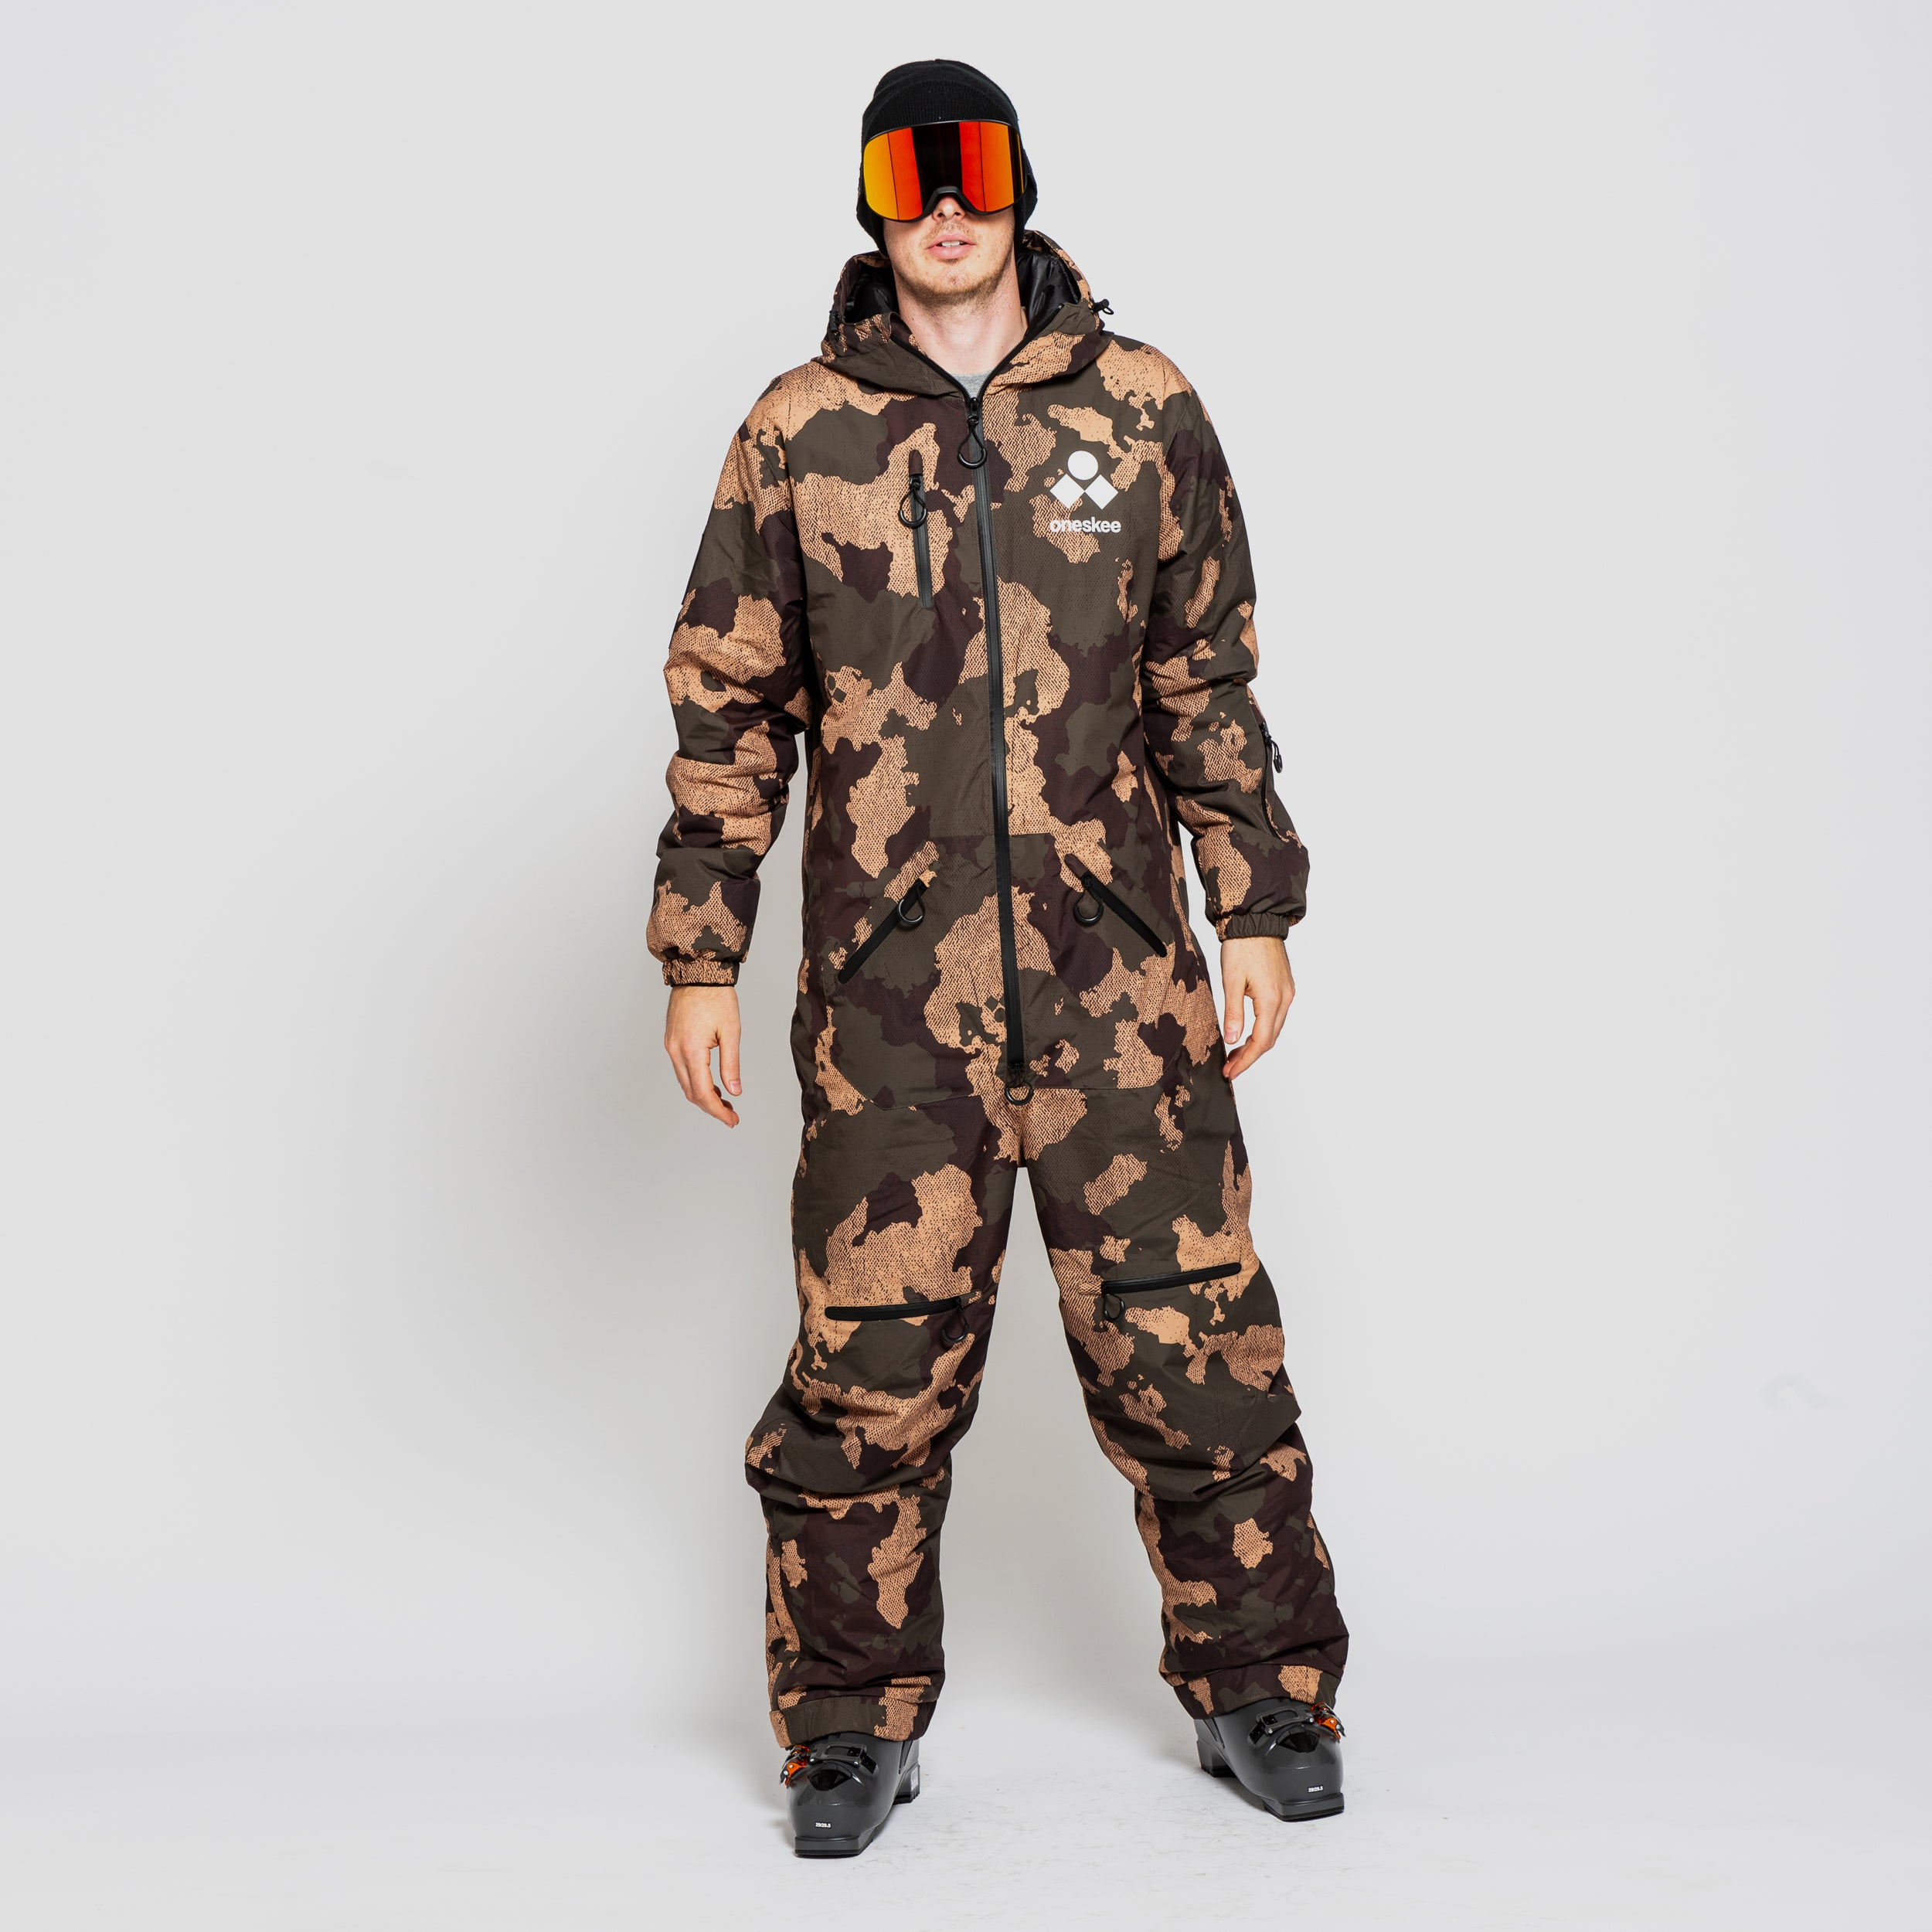 Men's Original Pro Suit - Camo image 3